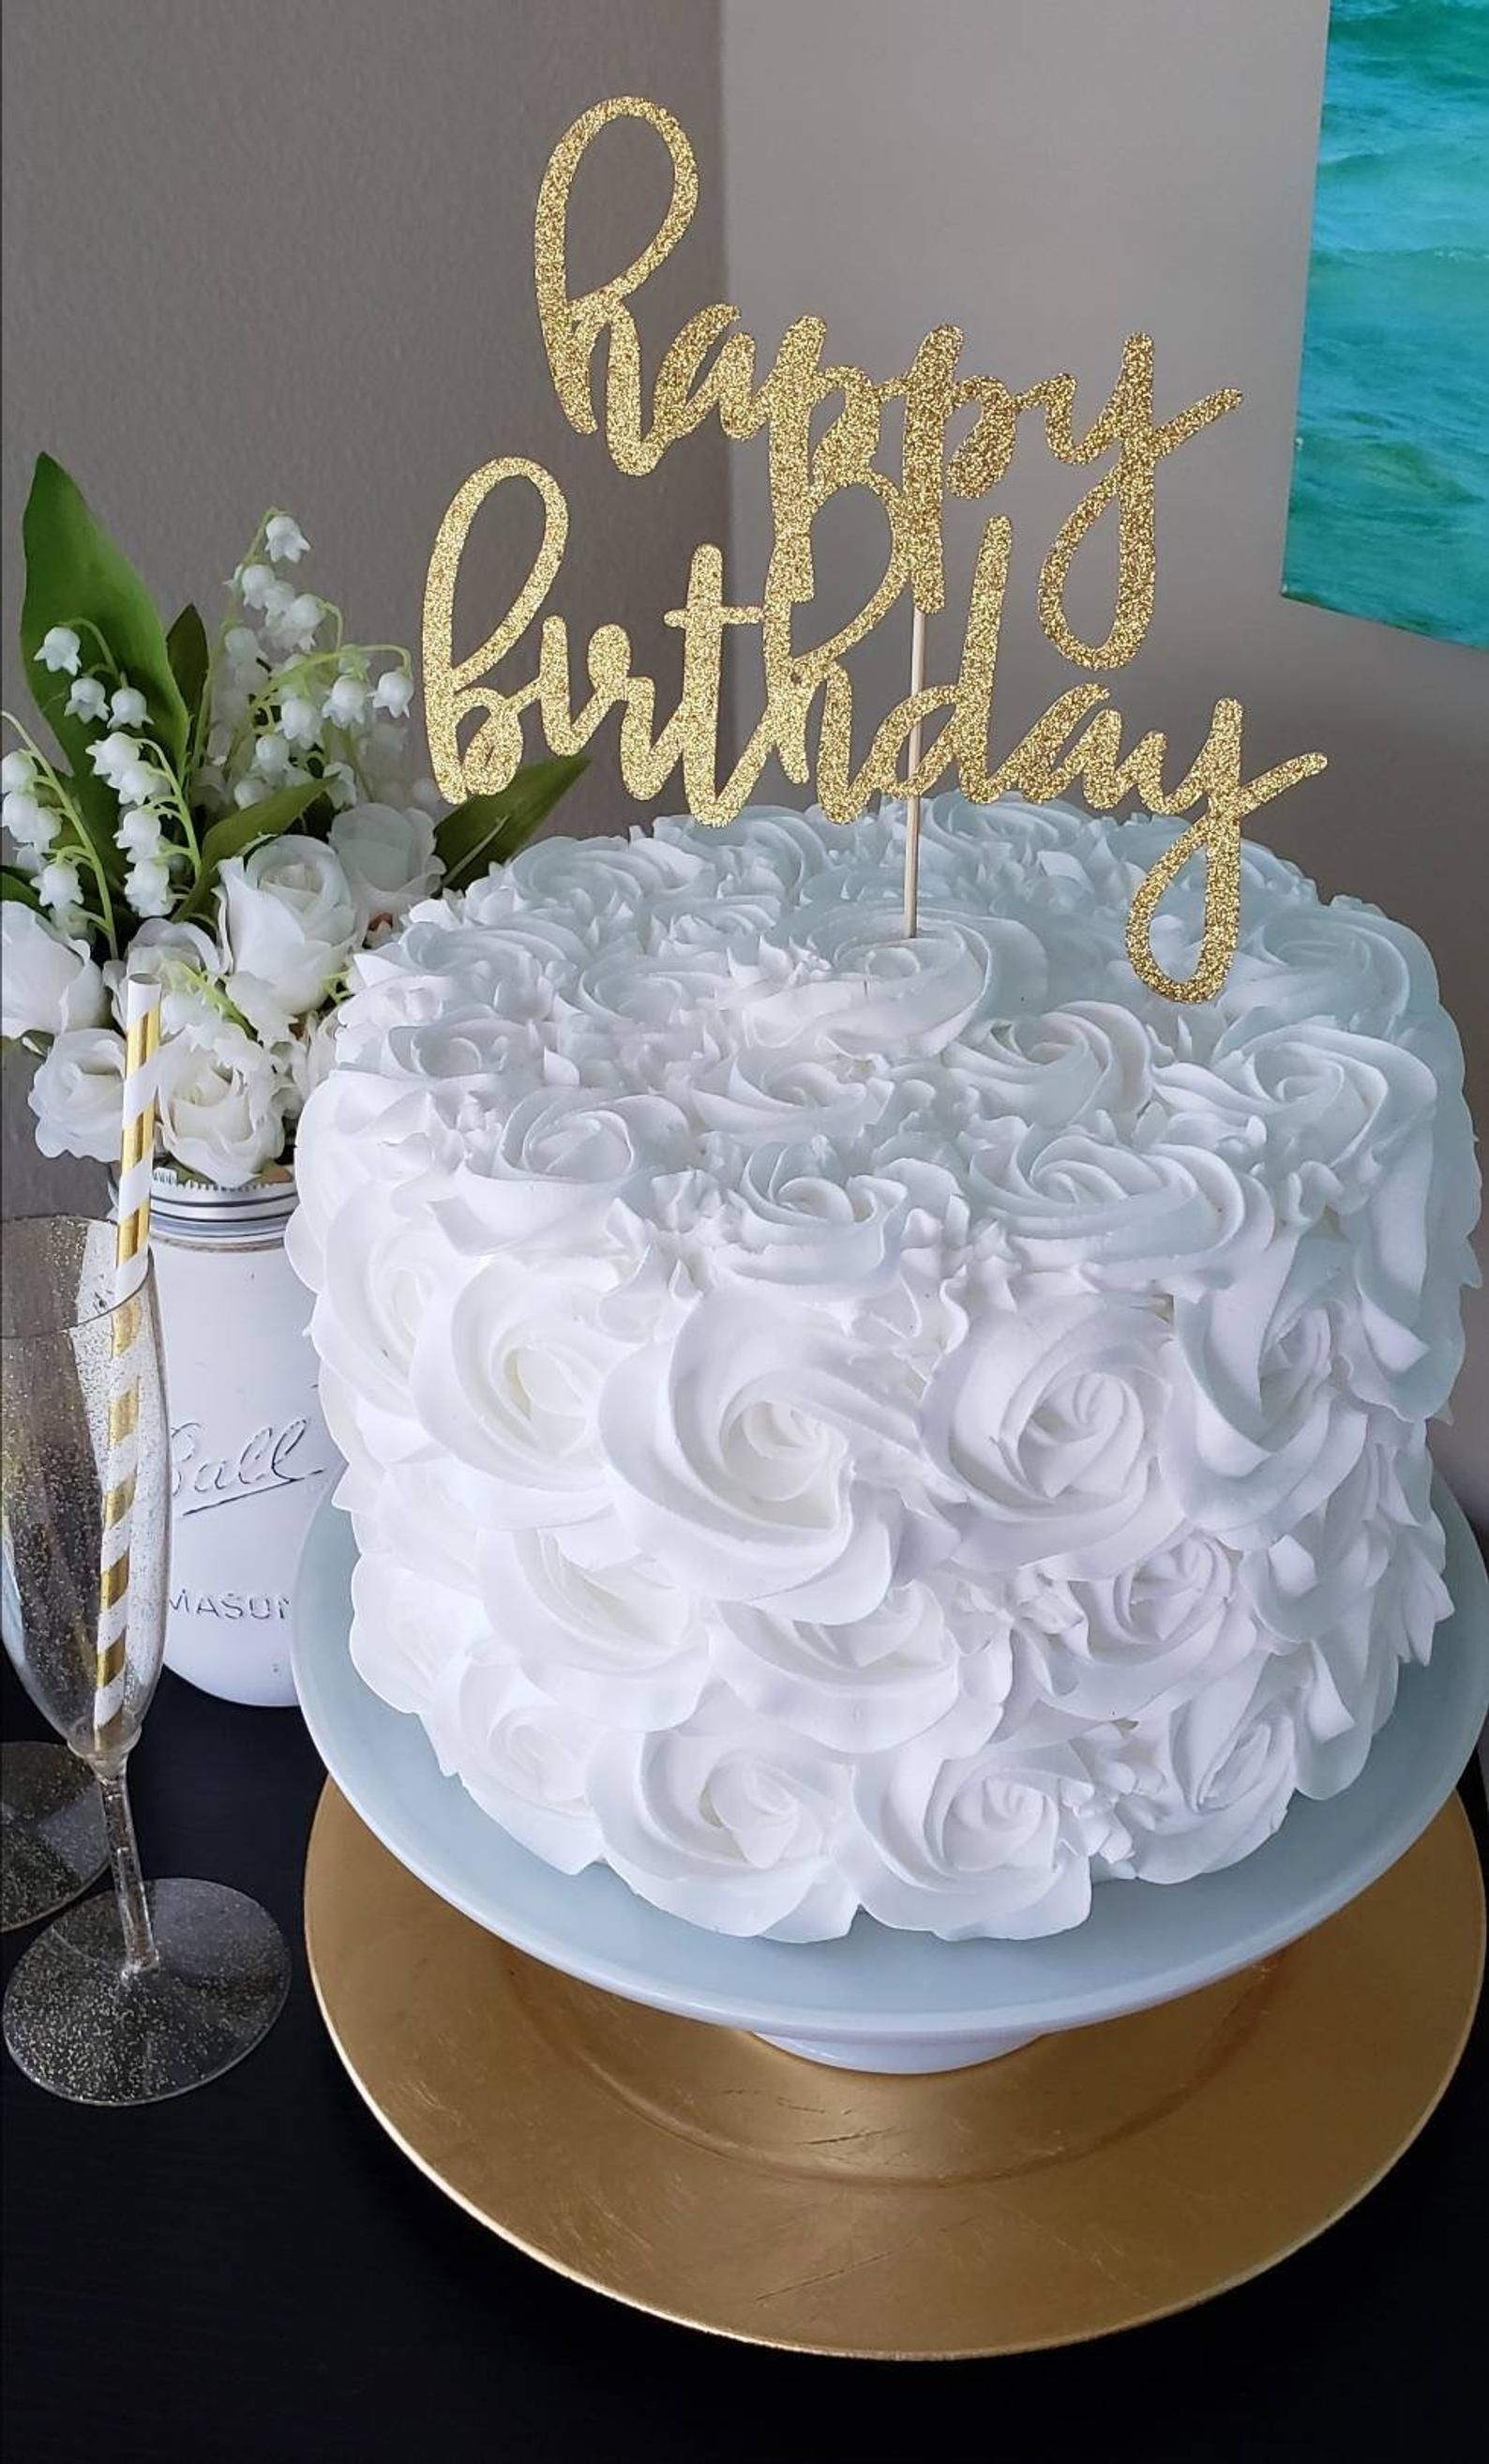 Happy Birthday Cake Topper Happy Birthday Decorations Custom Cake Topper Gold Glitter Cake Topper Happy Birthday Ideas Cake Topper In 2021 22nd Birthday Cakes 15th Birthday Cakes Pretty Birthday Cakes